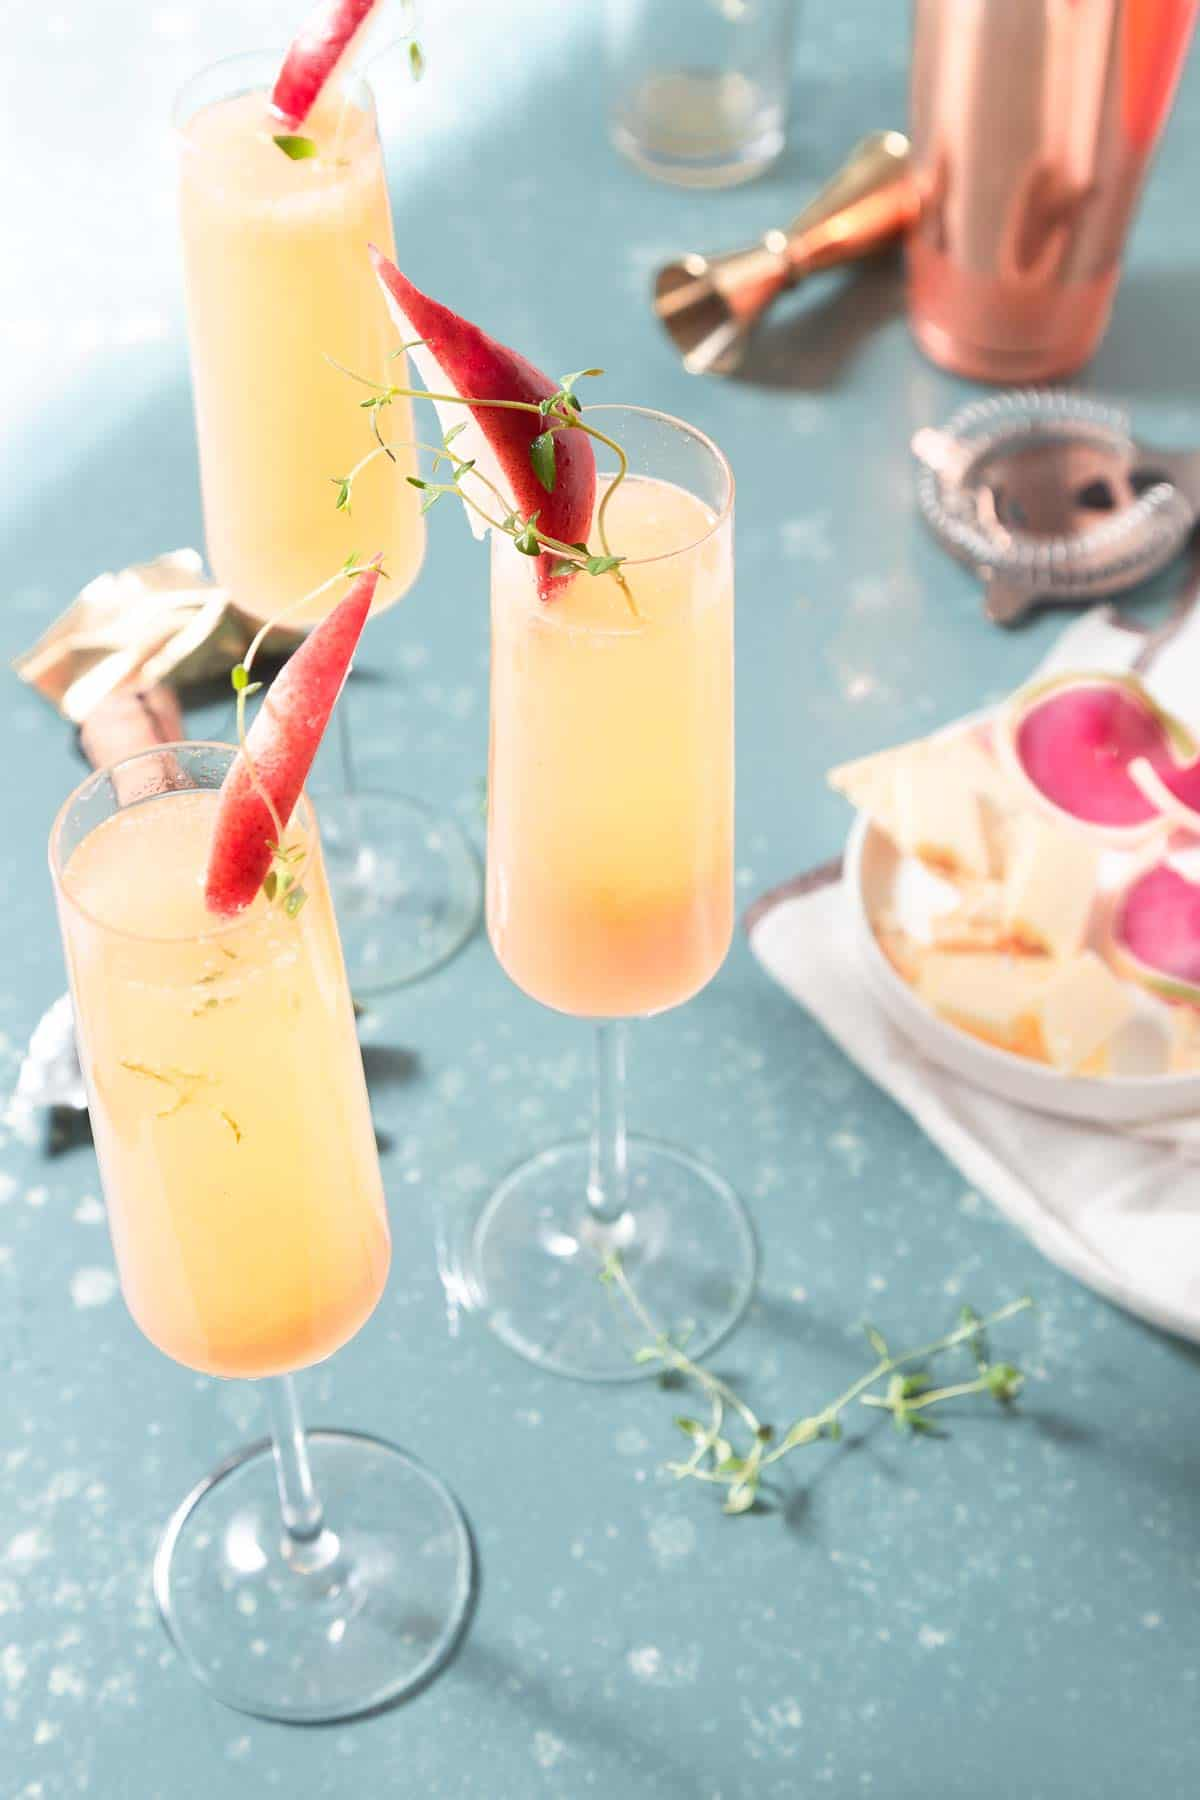 3 champagne flutes filled with a yellow drink and garnished with a slice of red pear